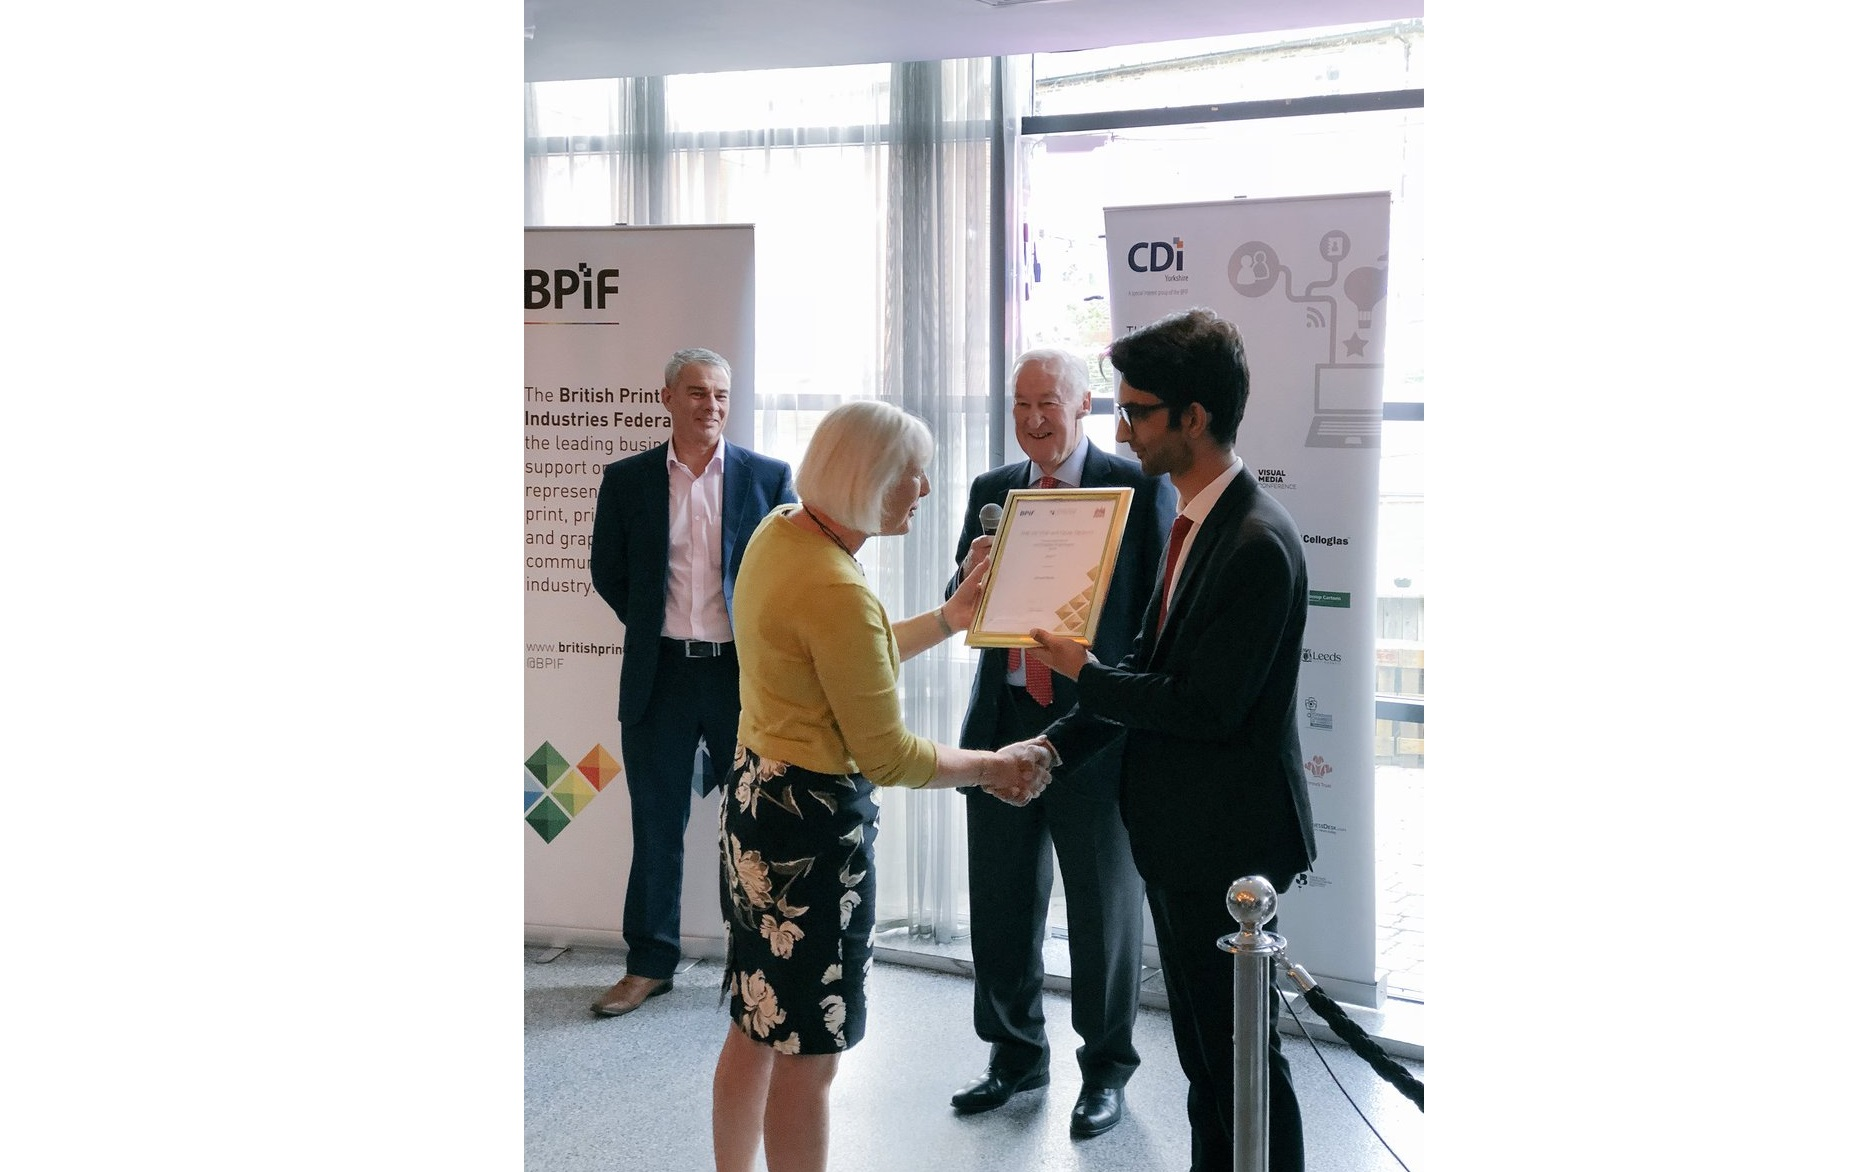 The BPIF and CDi mark Yorkshire Day with an event to celebrate the print, creative and digital industries